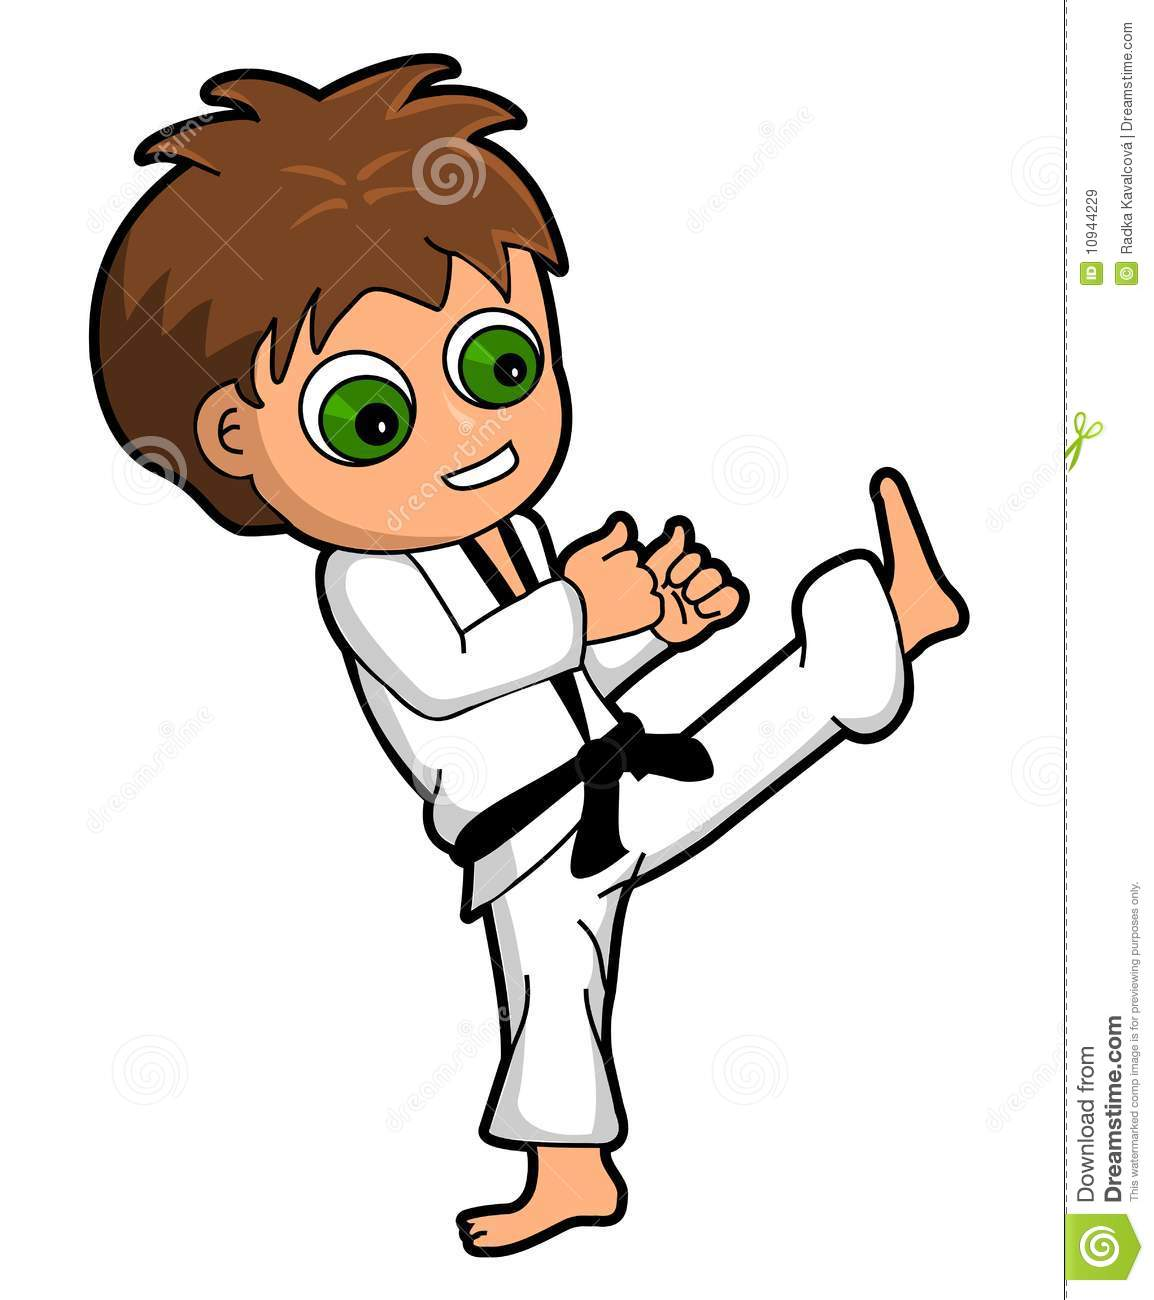 Gif clipart images of kids in karate.